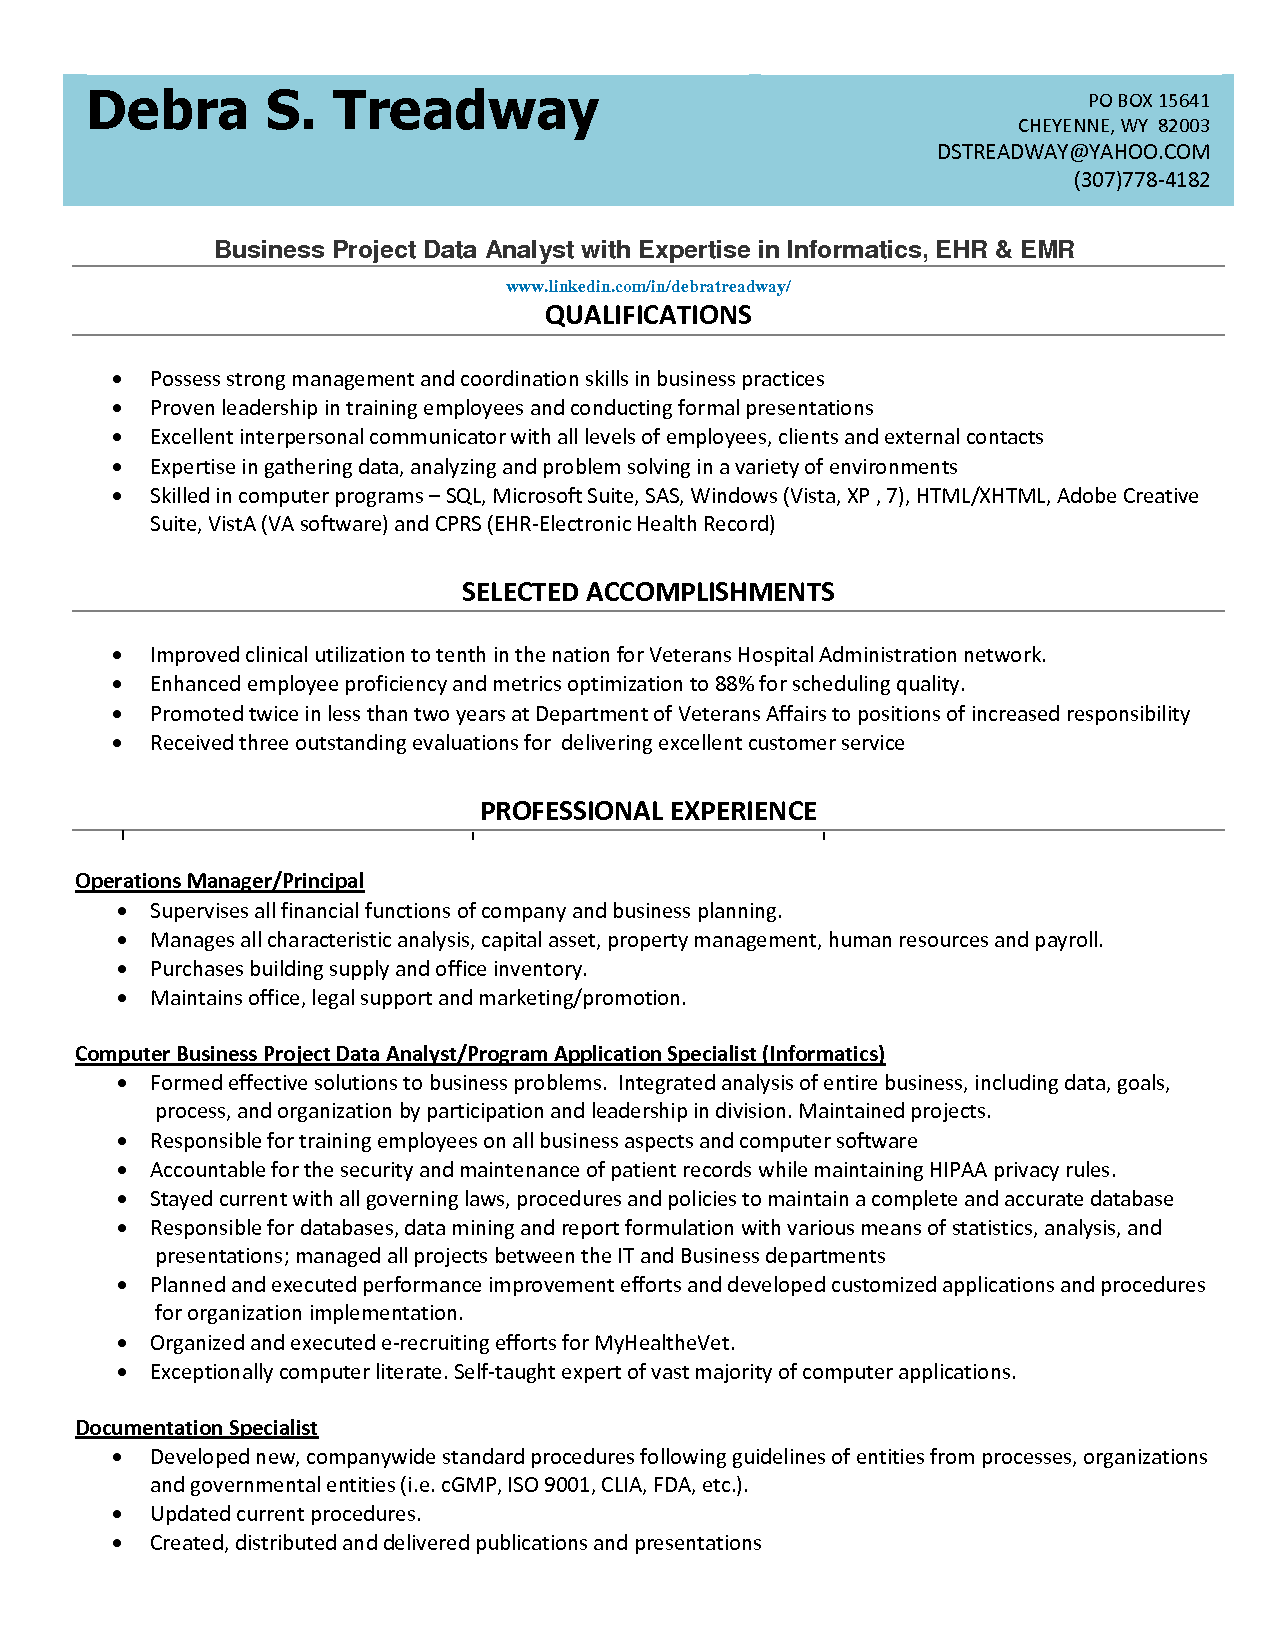 List Qualifications Business Project Data Analyst Resume Example With  Expertise Informatics  Resume Data Analyst